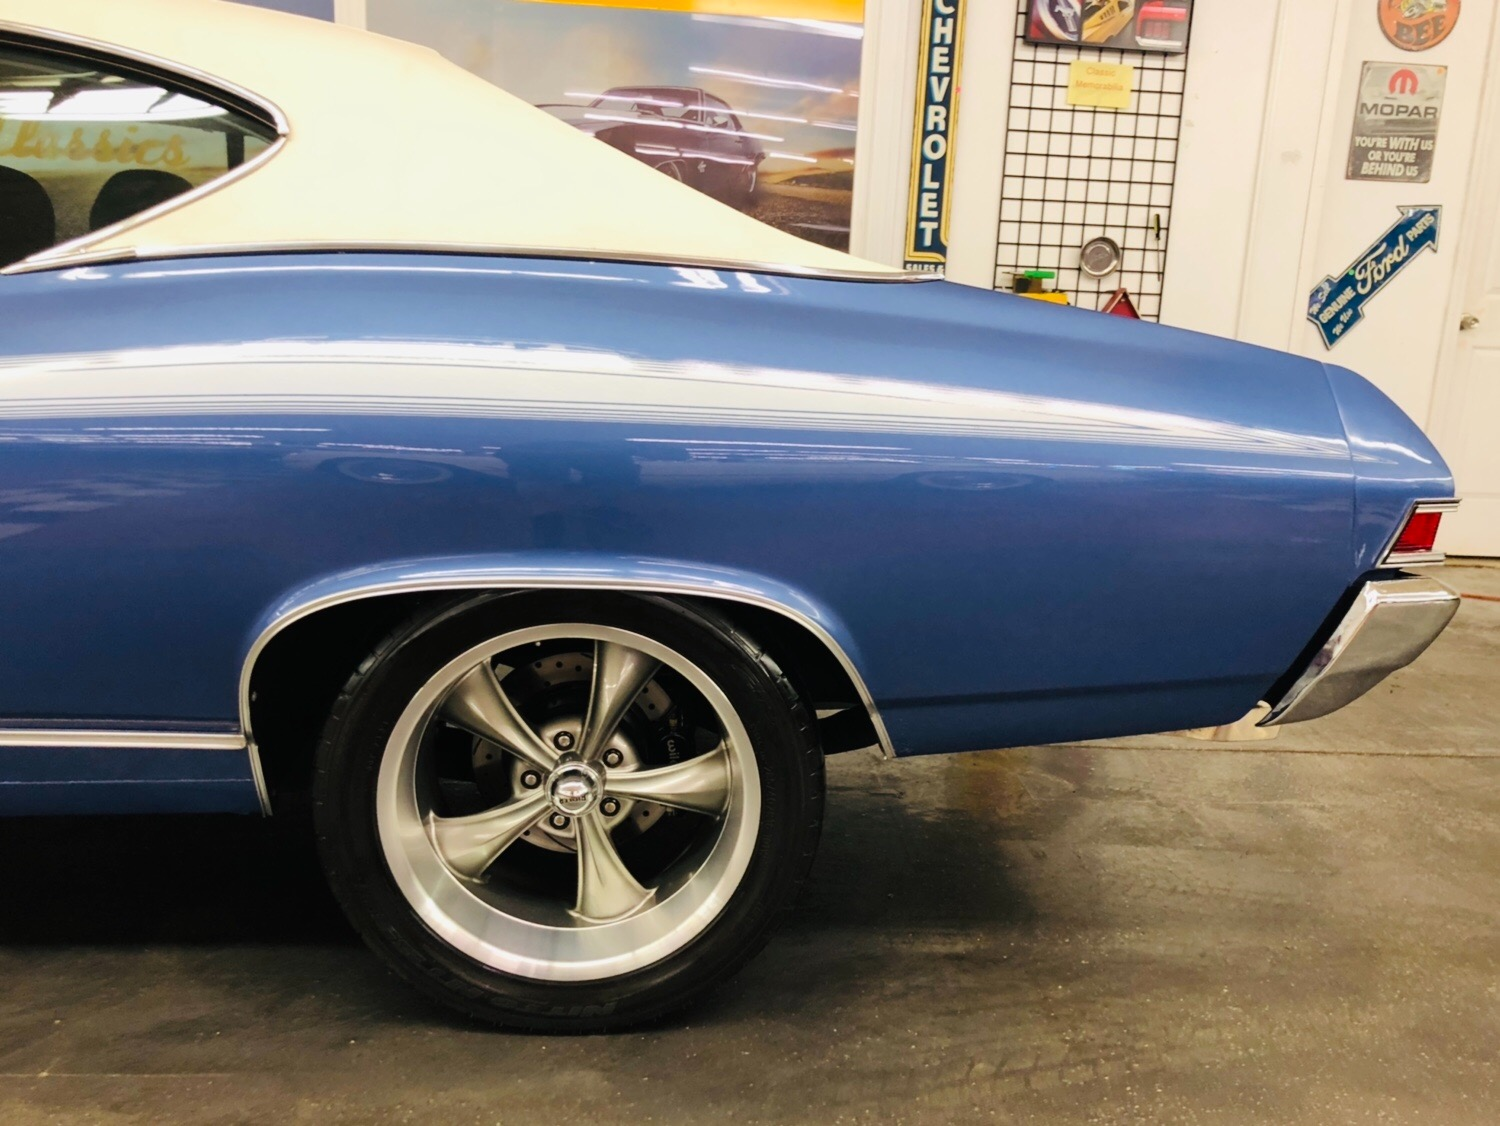 Used 1968 Chevrolet Chevelle -572 FUEL INJECTED STREET BEAST-PRO TOURING | Mundelein, IL